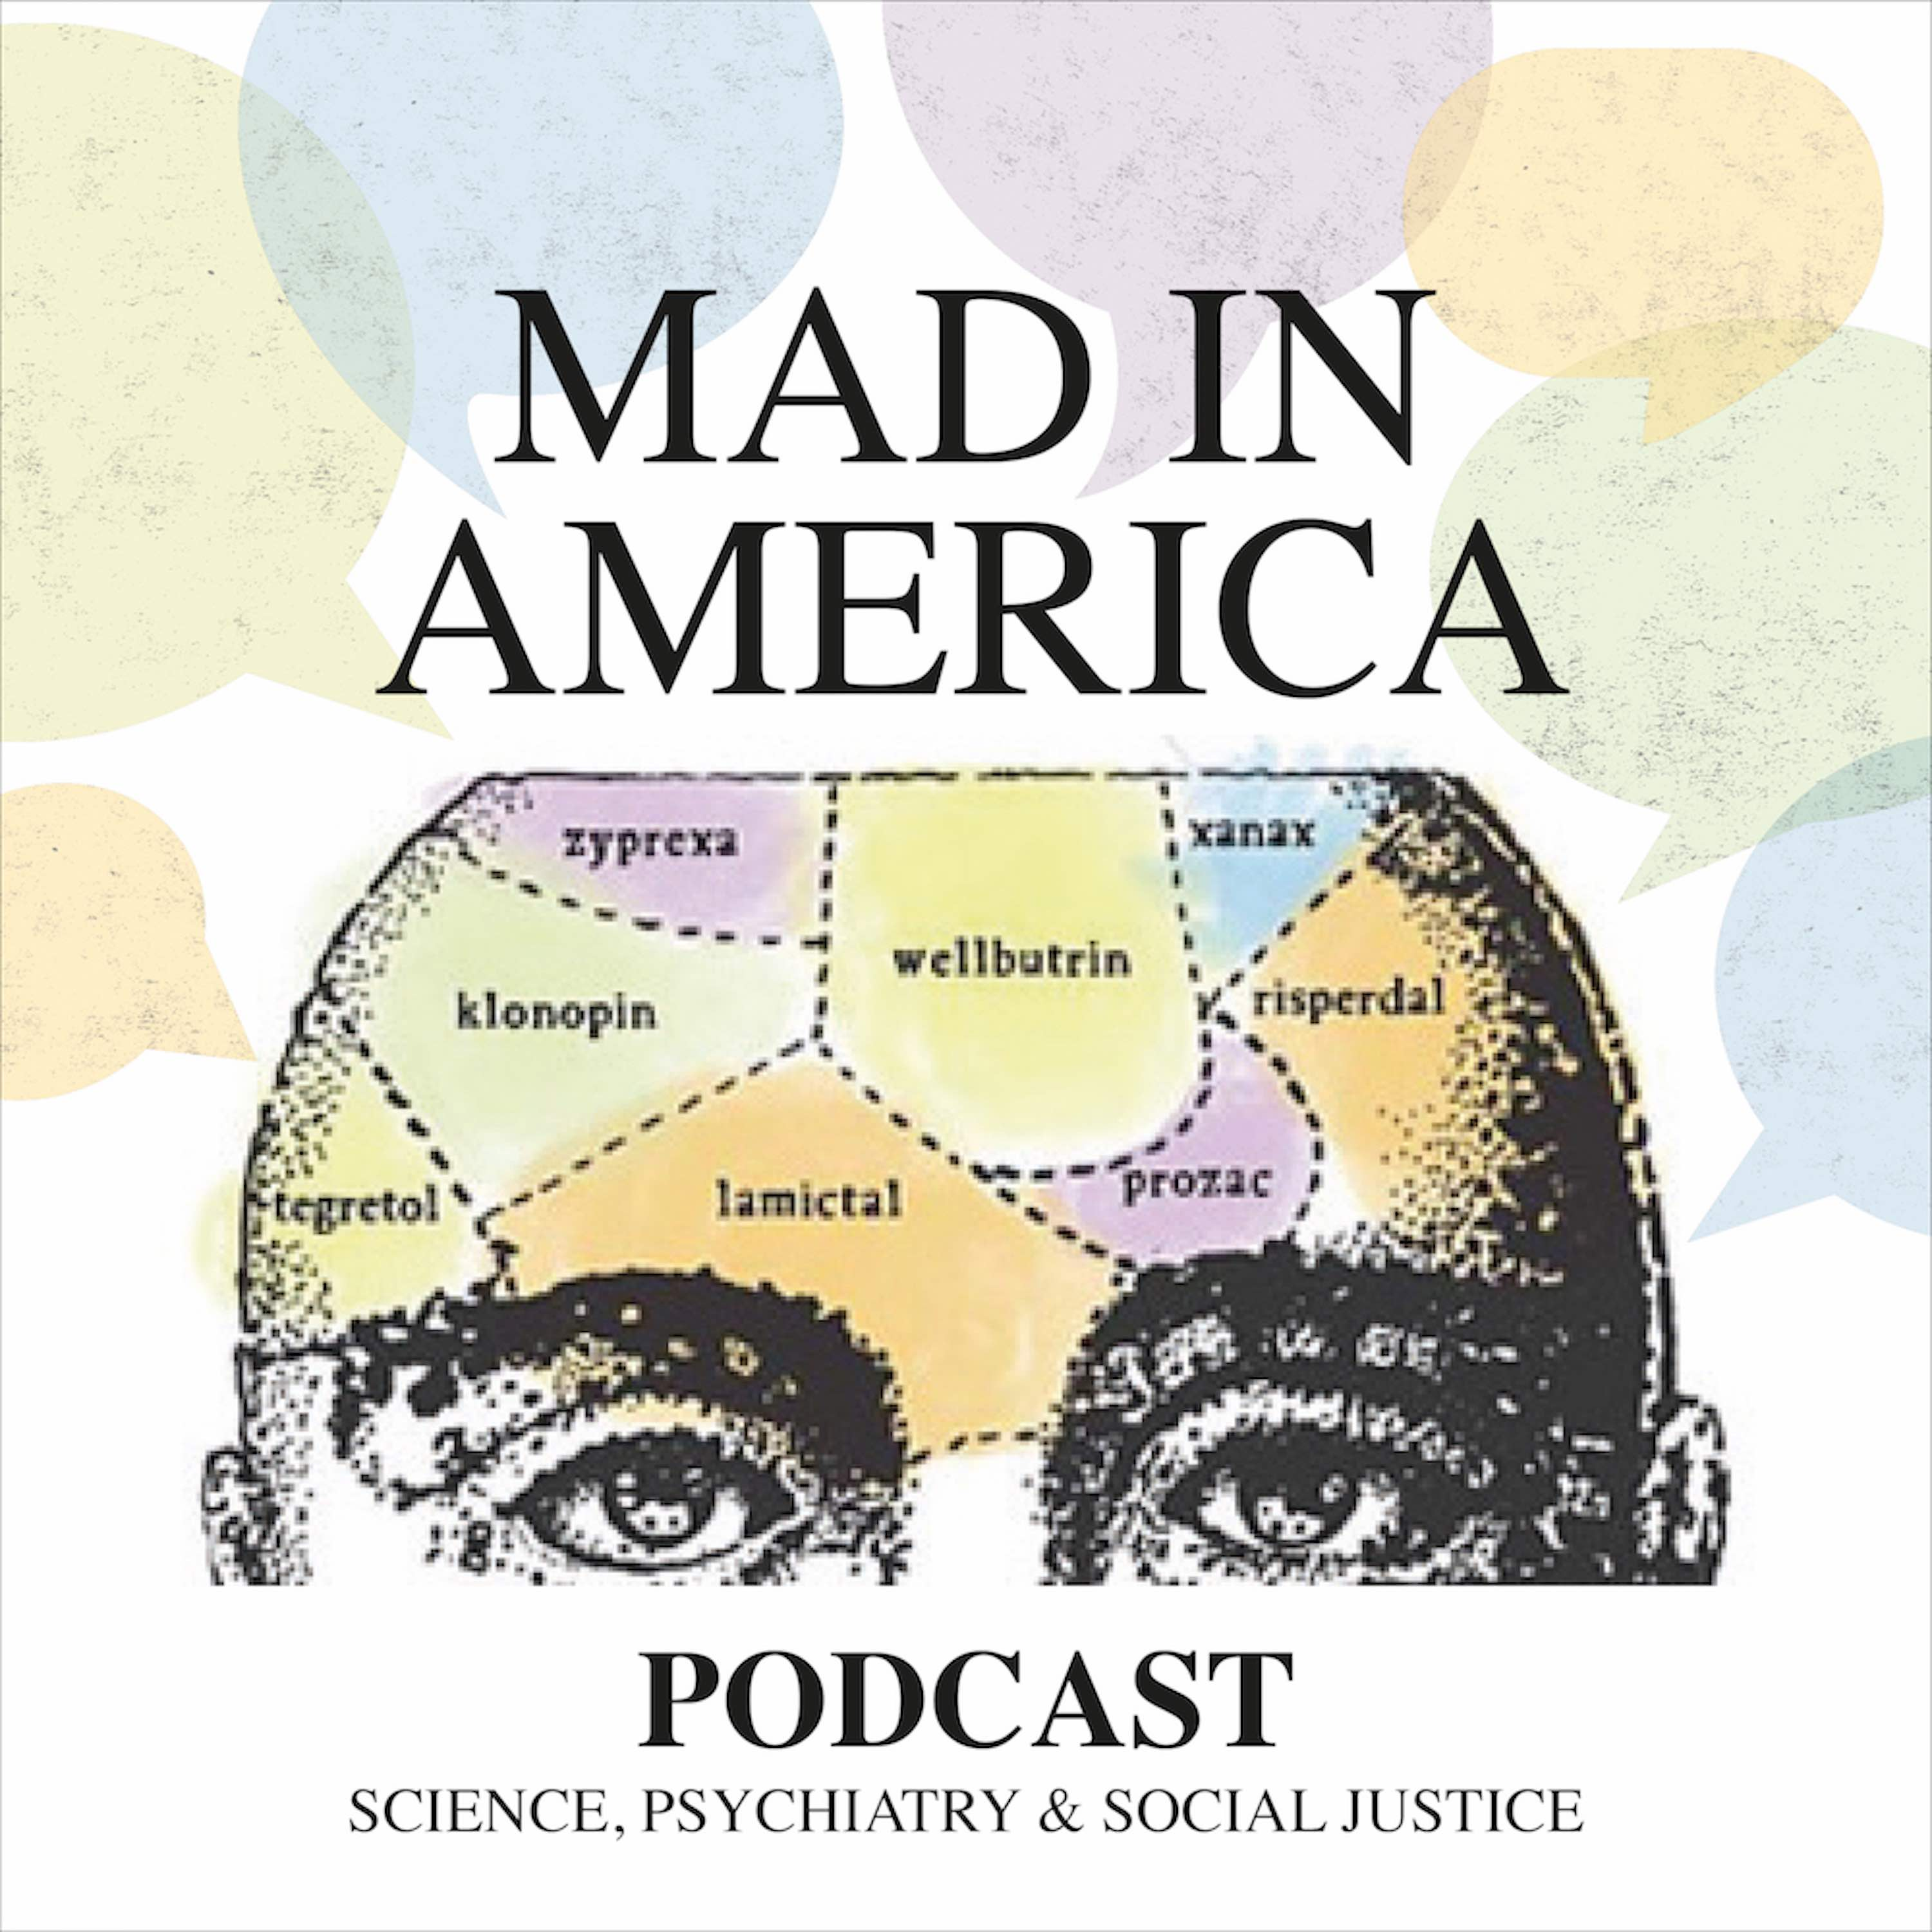 Mad in America: Rethinking Mental Health - Will Hall - A Harm Reduction Approach to Mental Health and Wellbeing